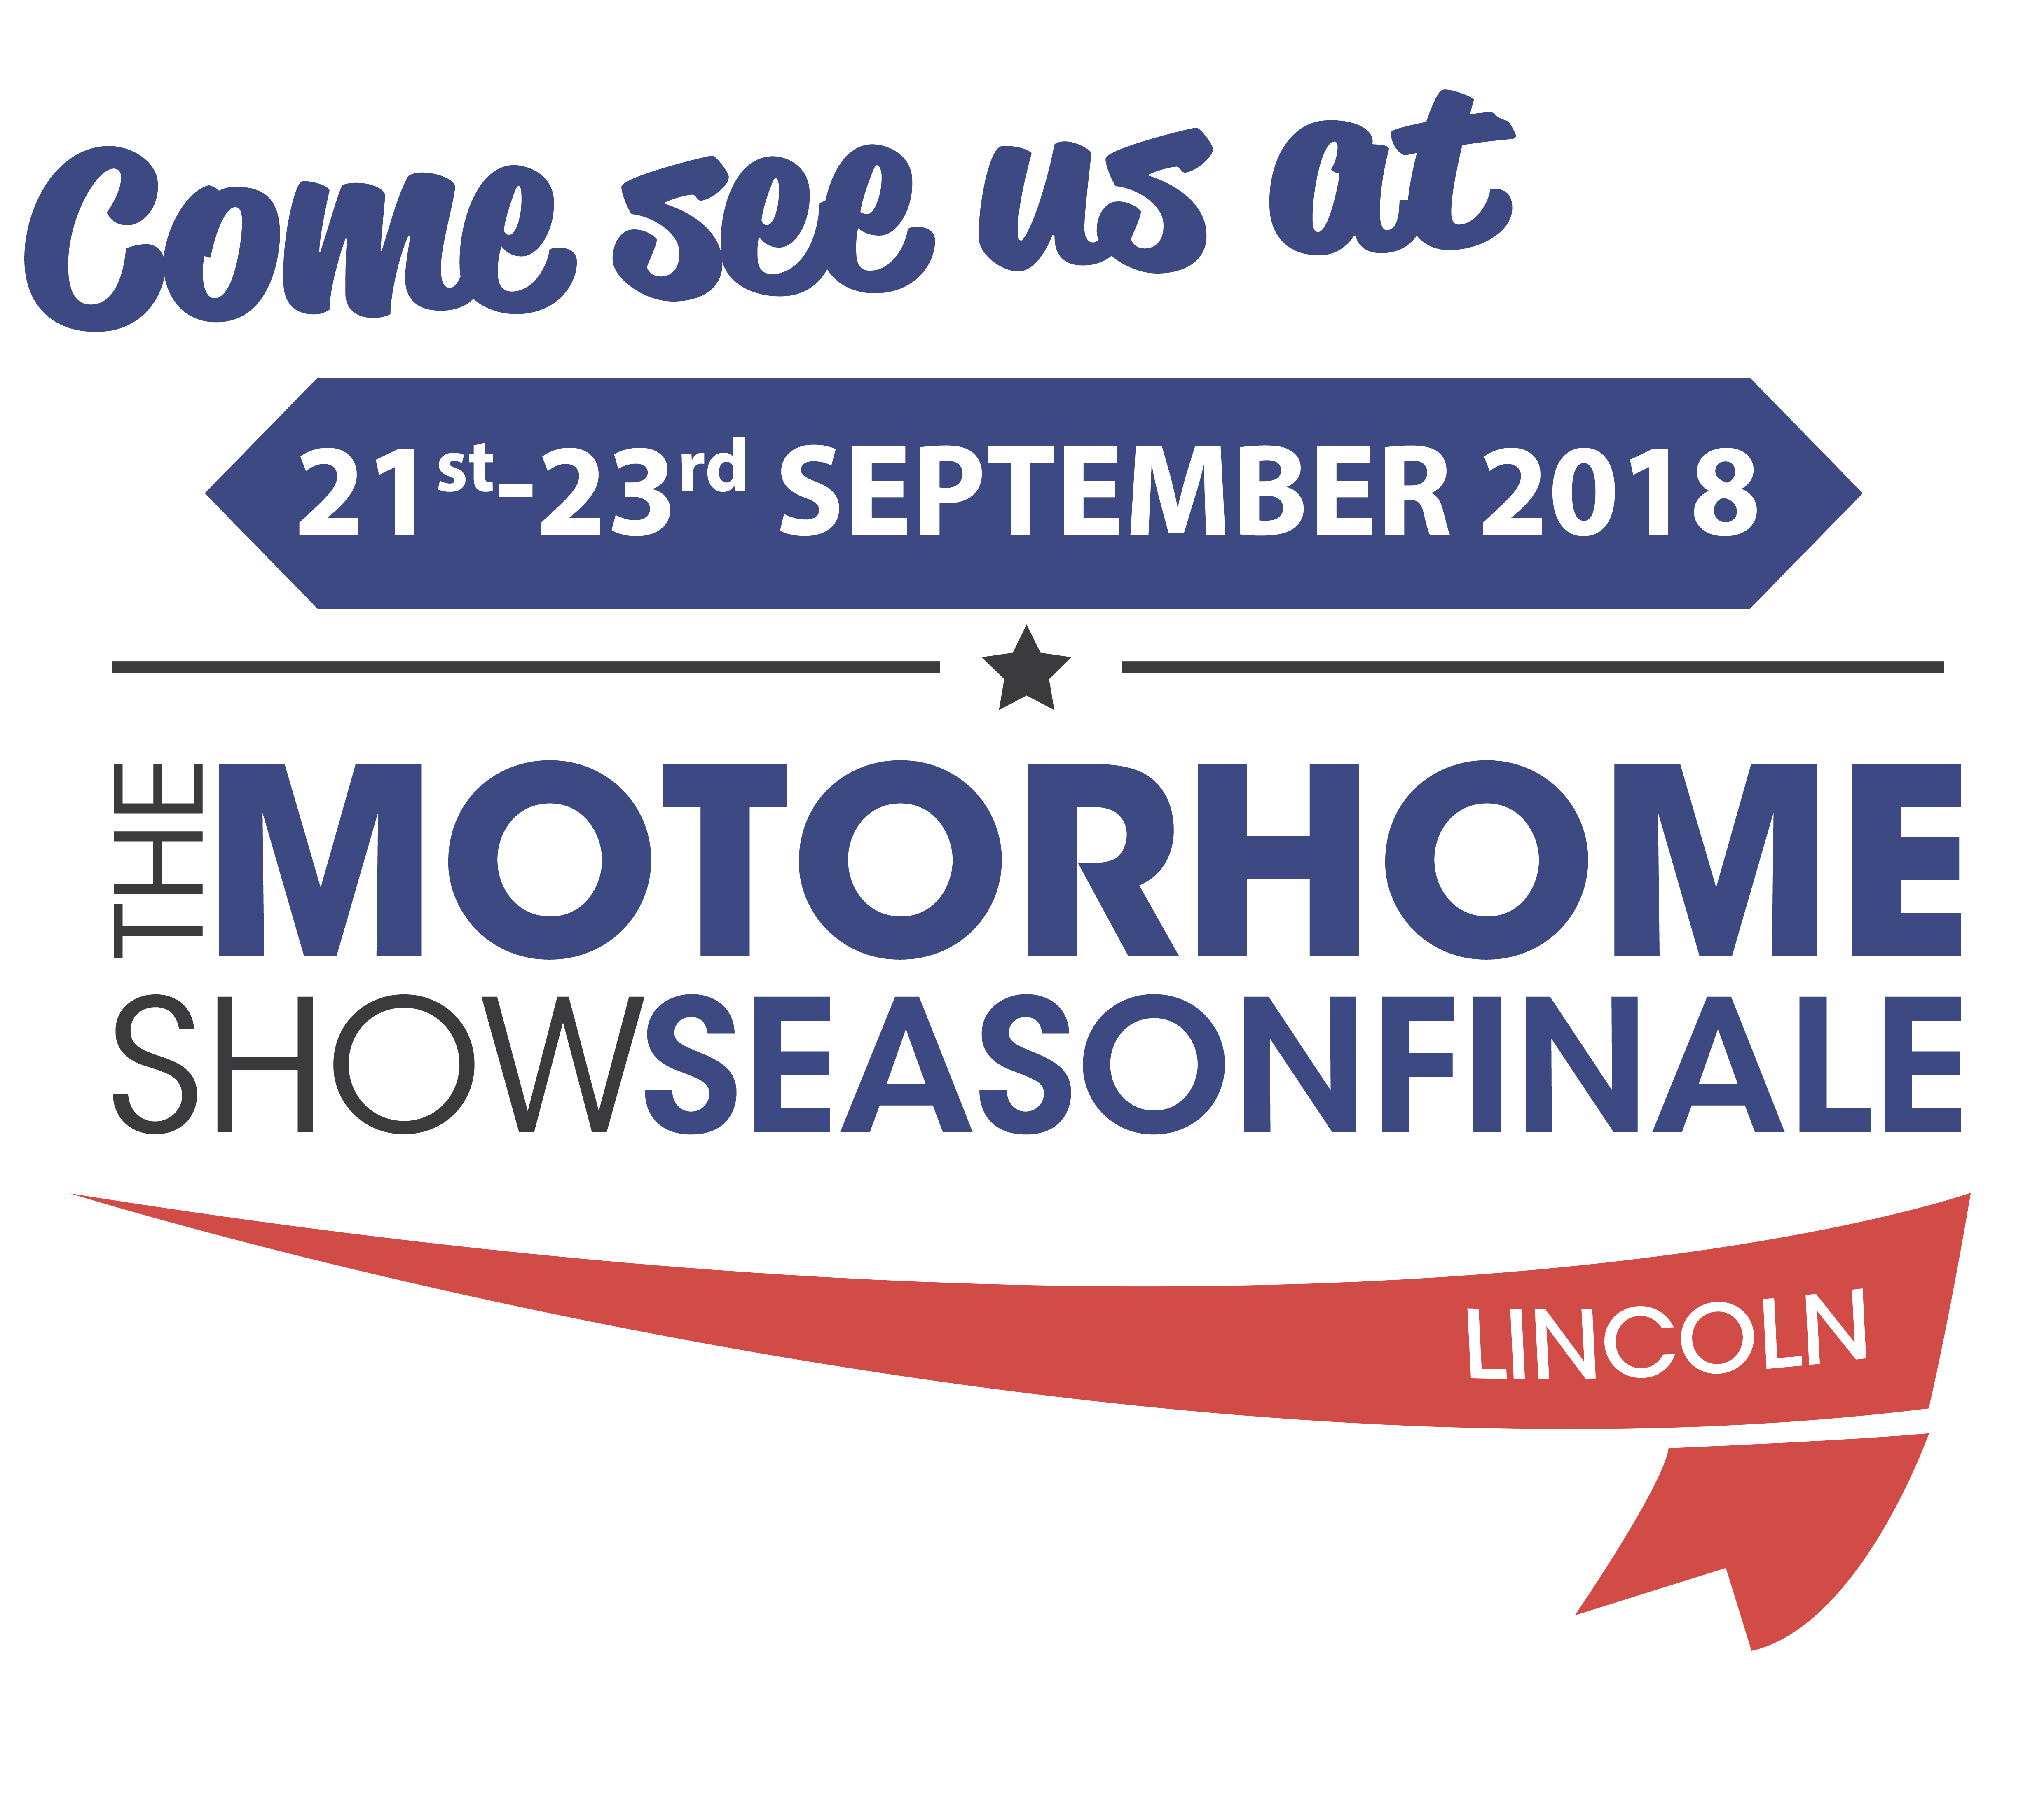 Next Show - Lincoln Motorhome Show 21st - 23rd September 2018